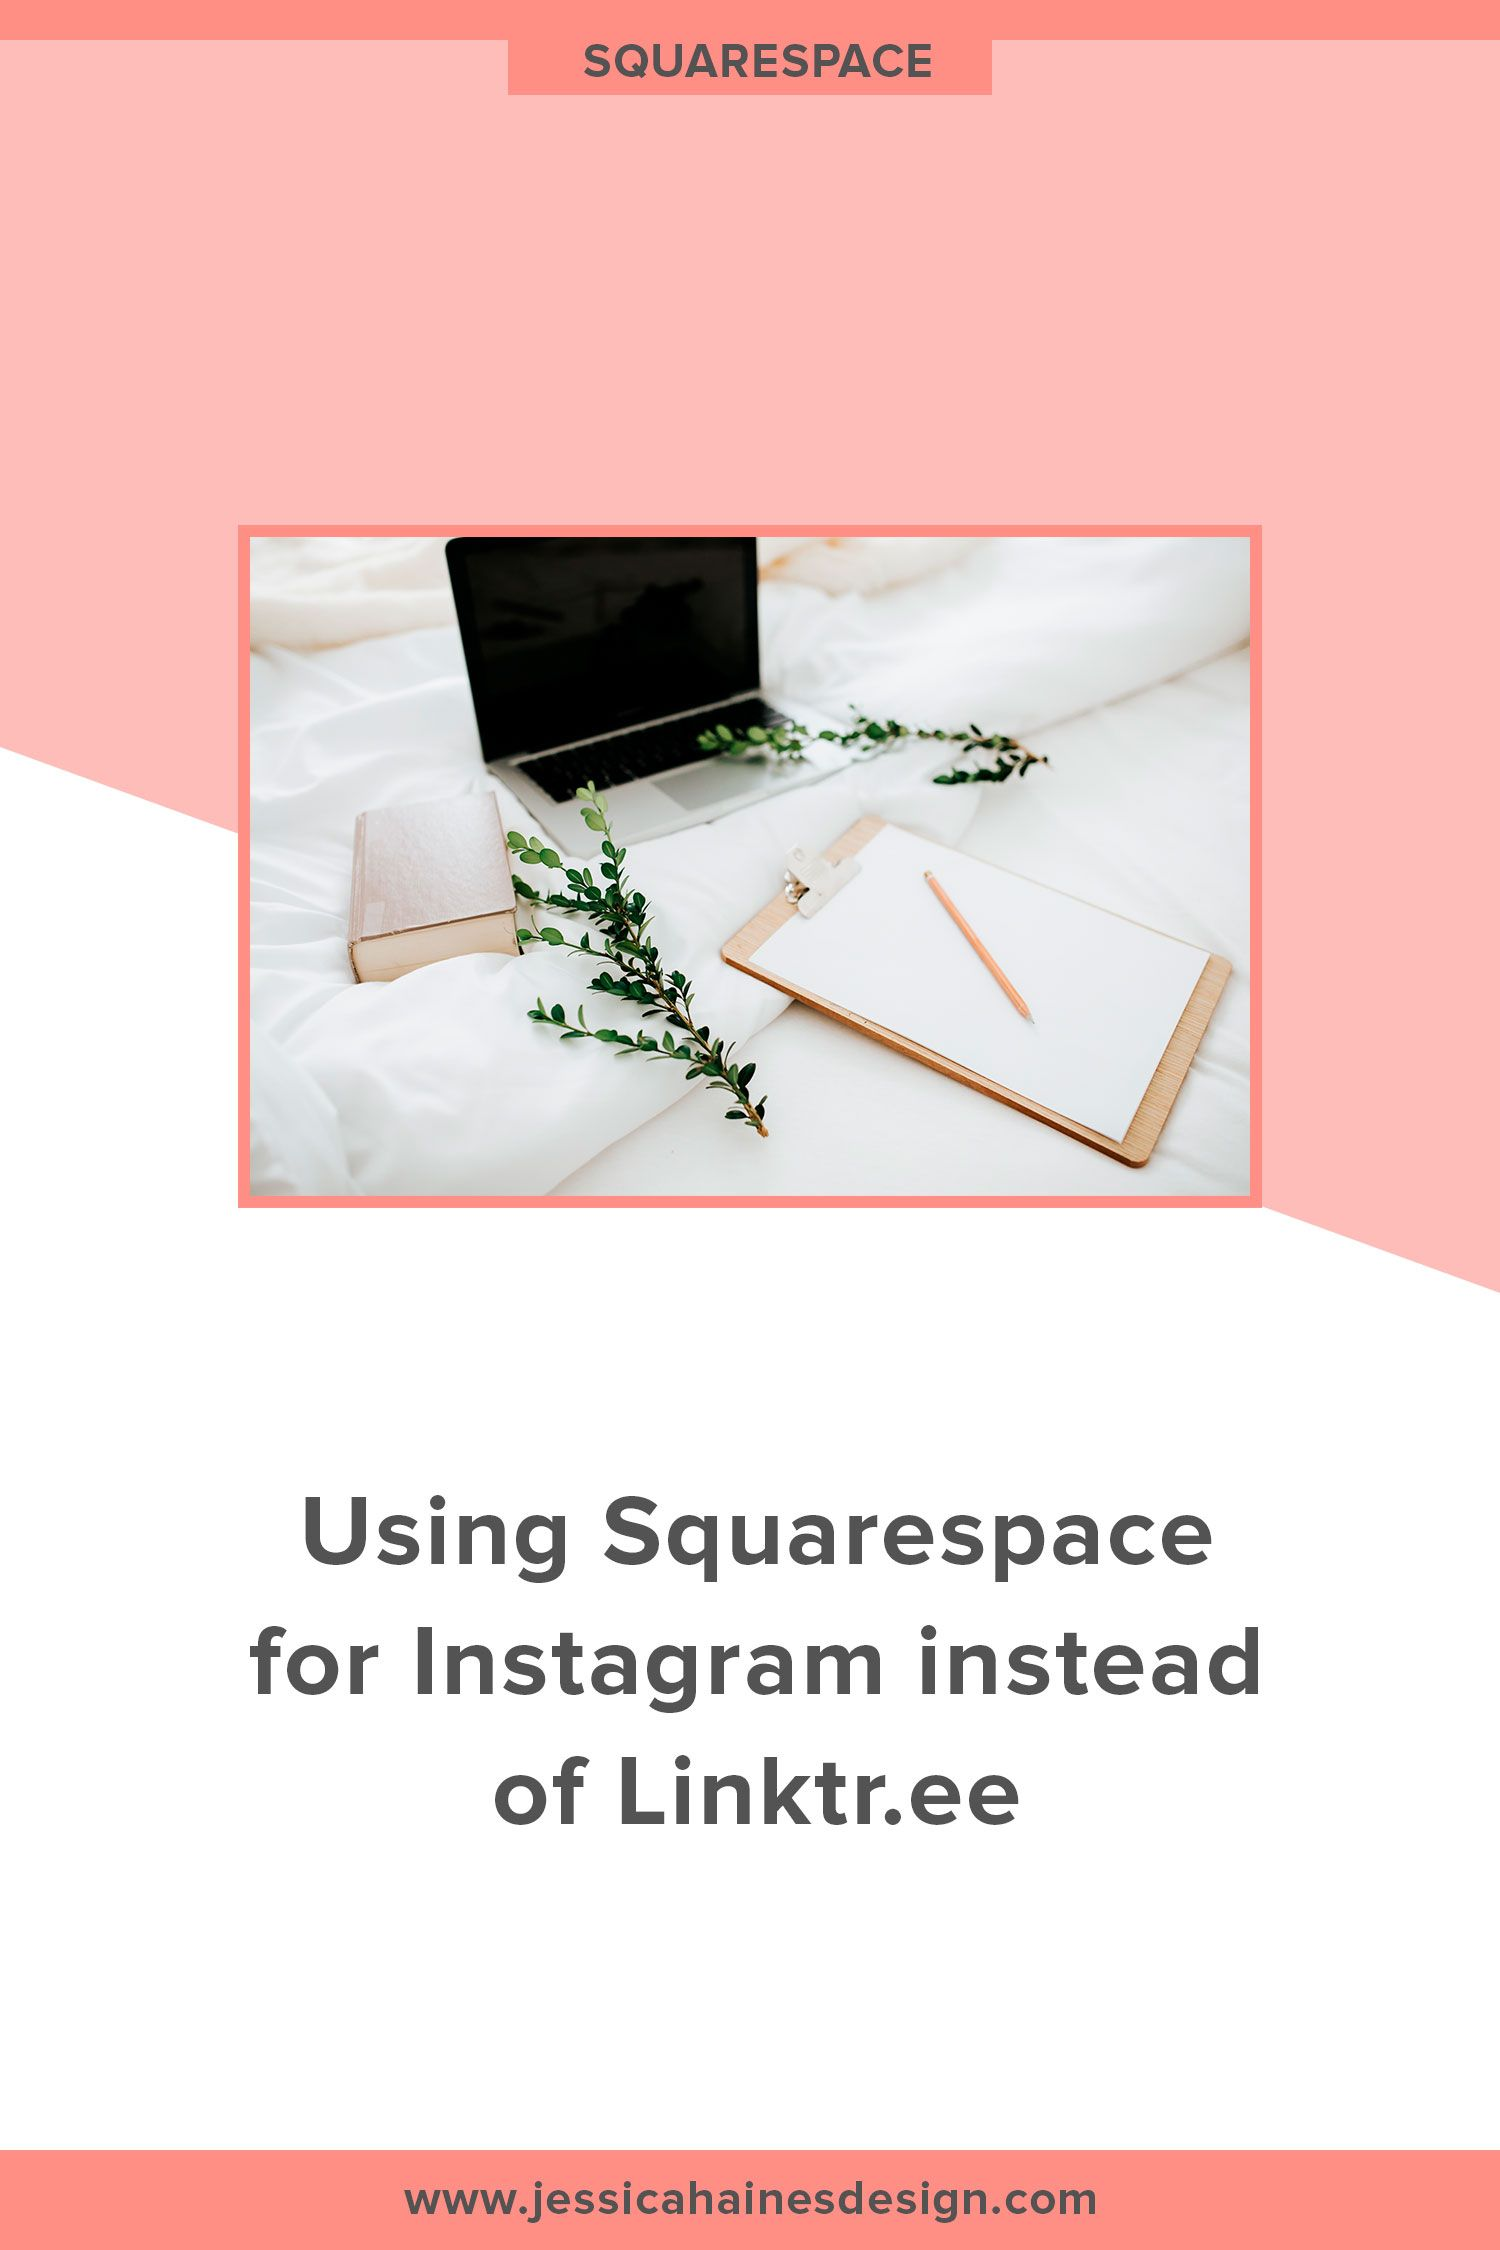 Using Squarespace for Instagram instead of Linktr.ee